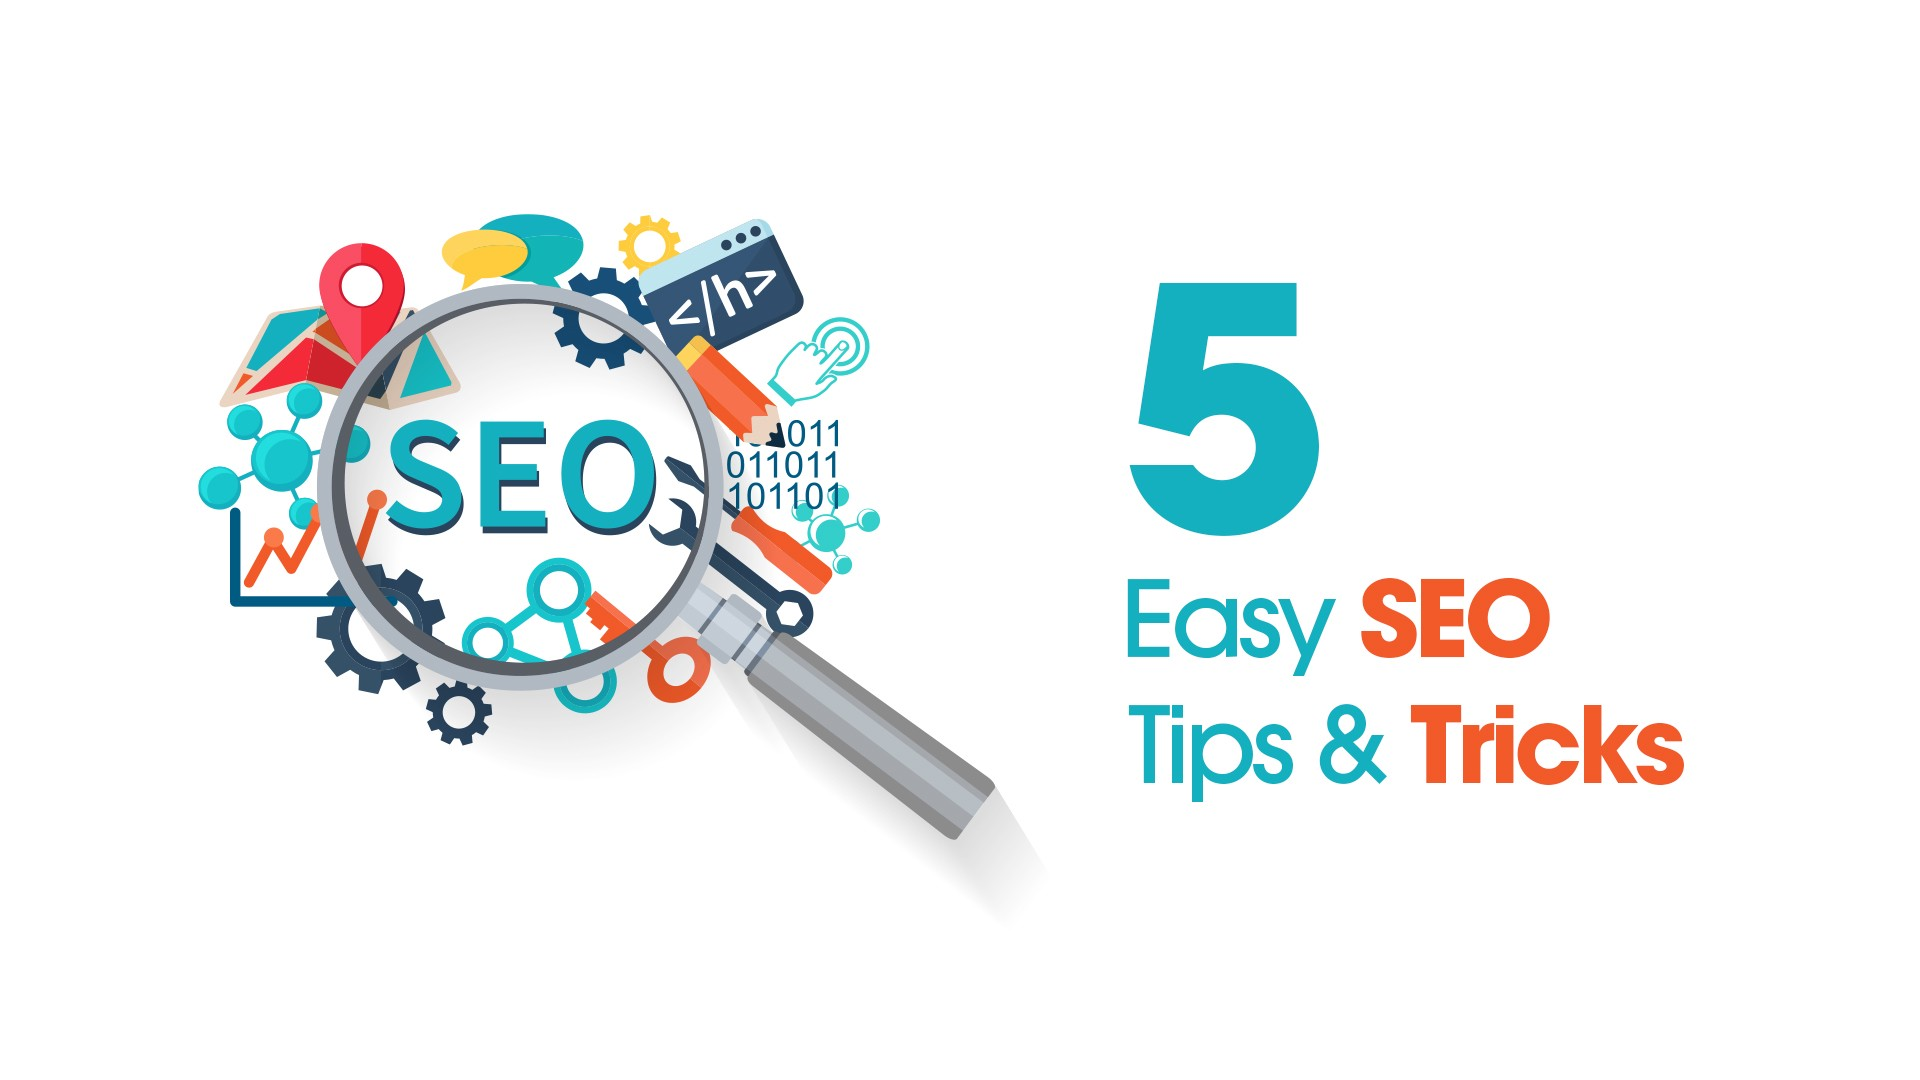 Our Important Seo Statements